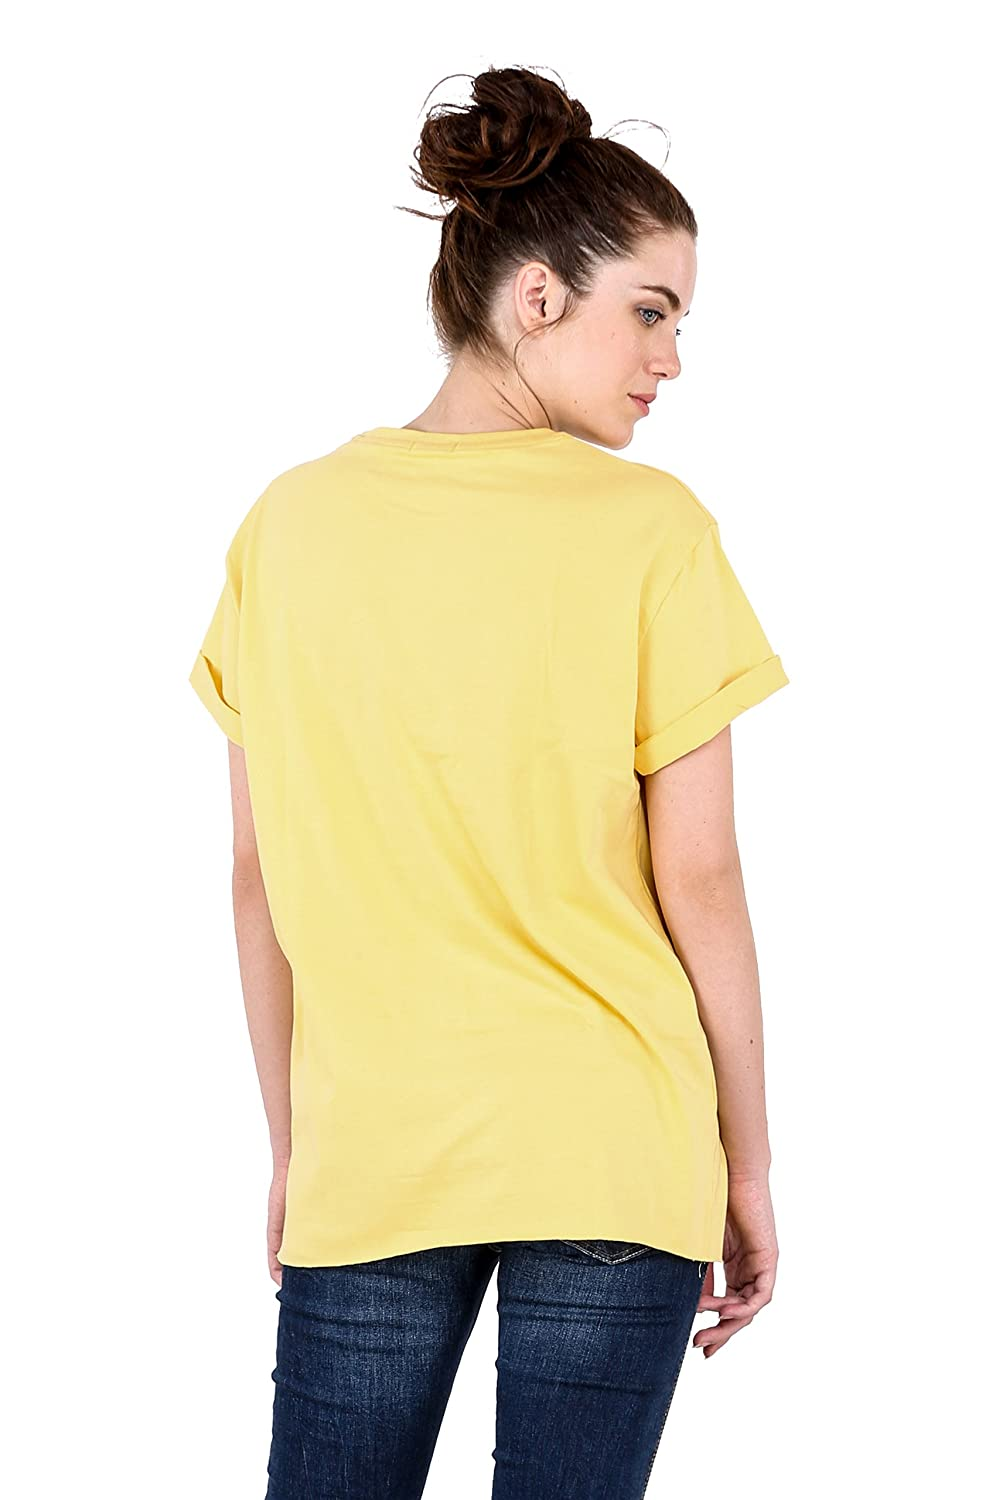 ccd44c2fe Bewakoof Women s Cotton Printed Boyfriend T-Shirts Yellow X-Small 112281   Amazon.in  Clothing   Accessories